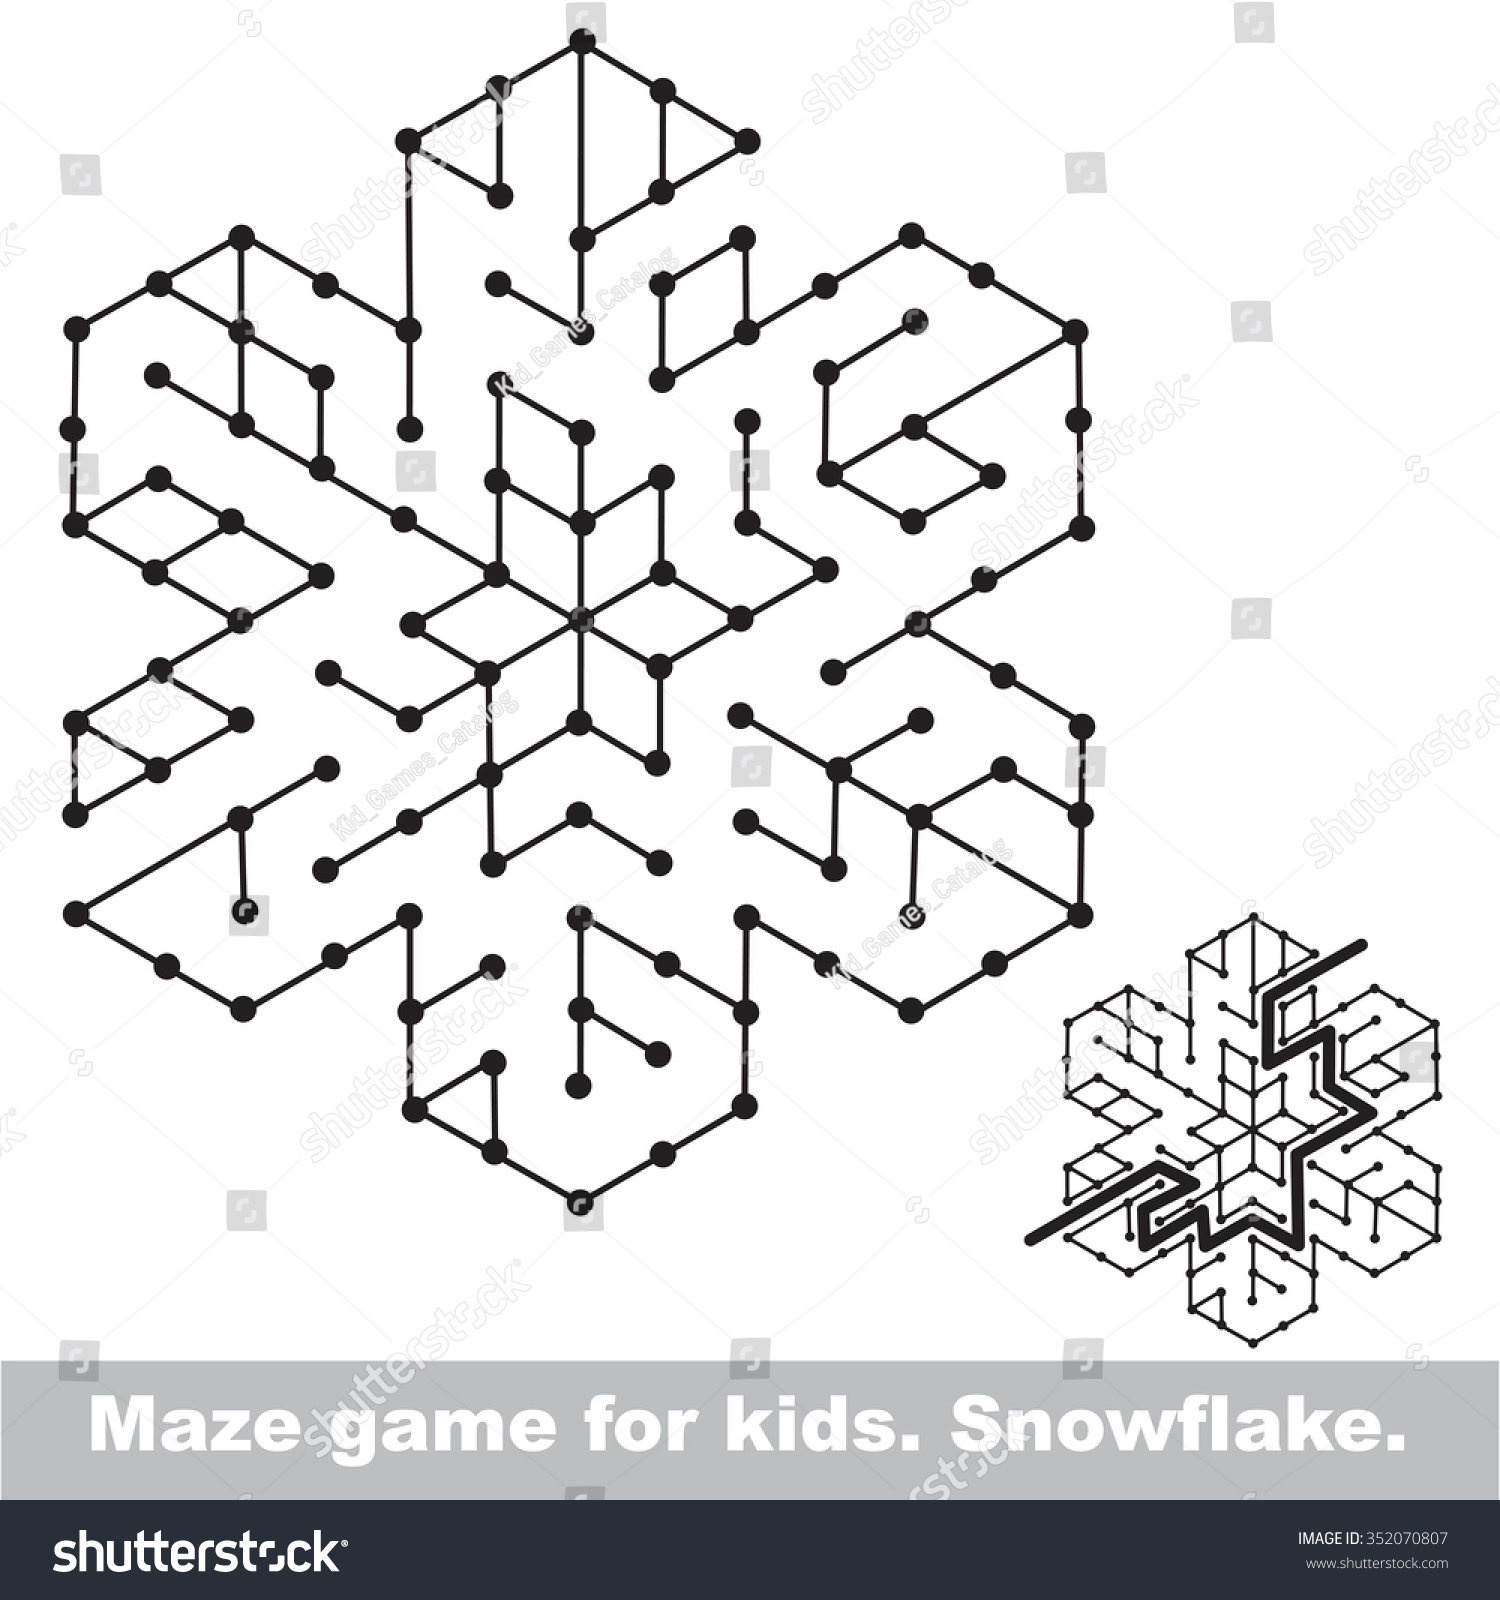 Search Way Kid Maze Game Be Stock Vector